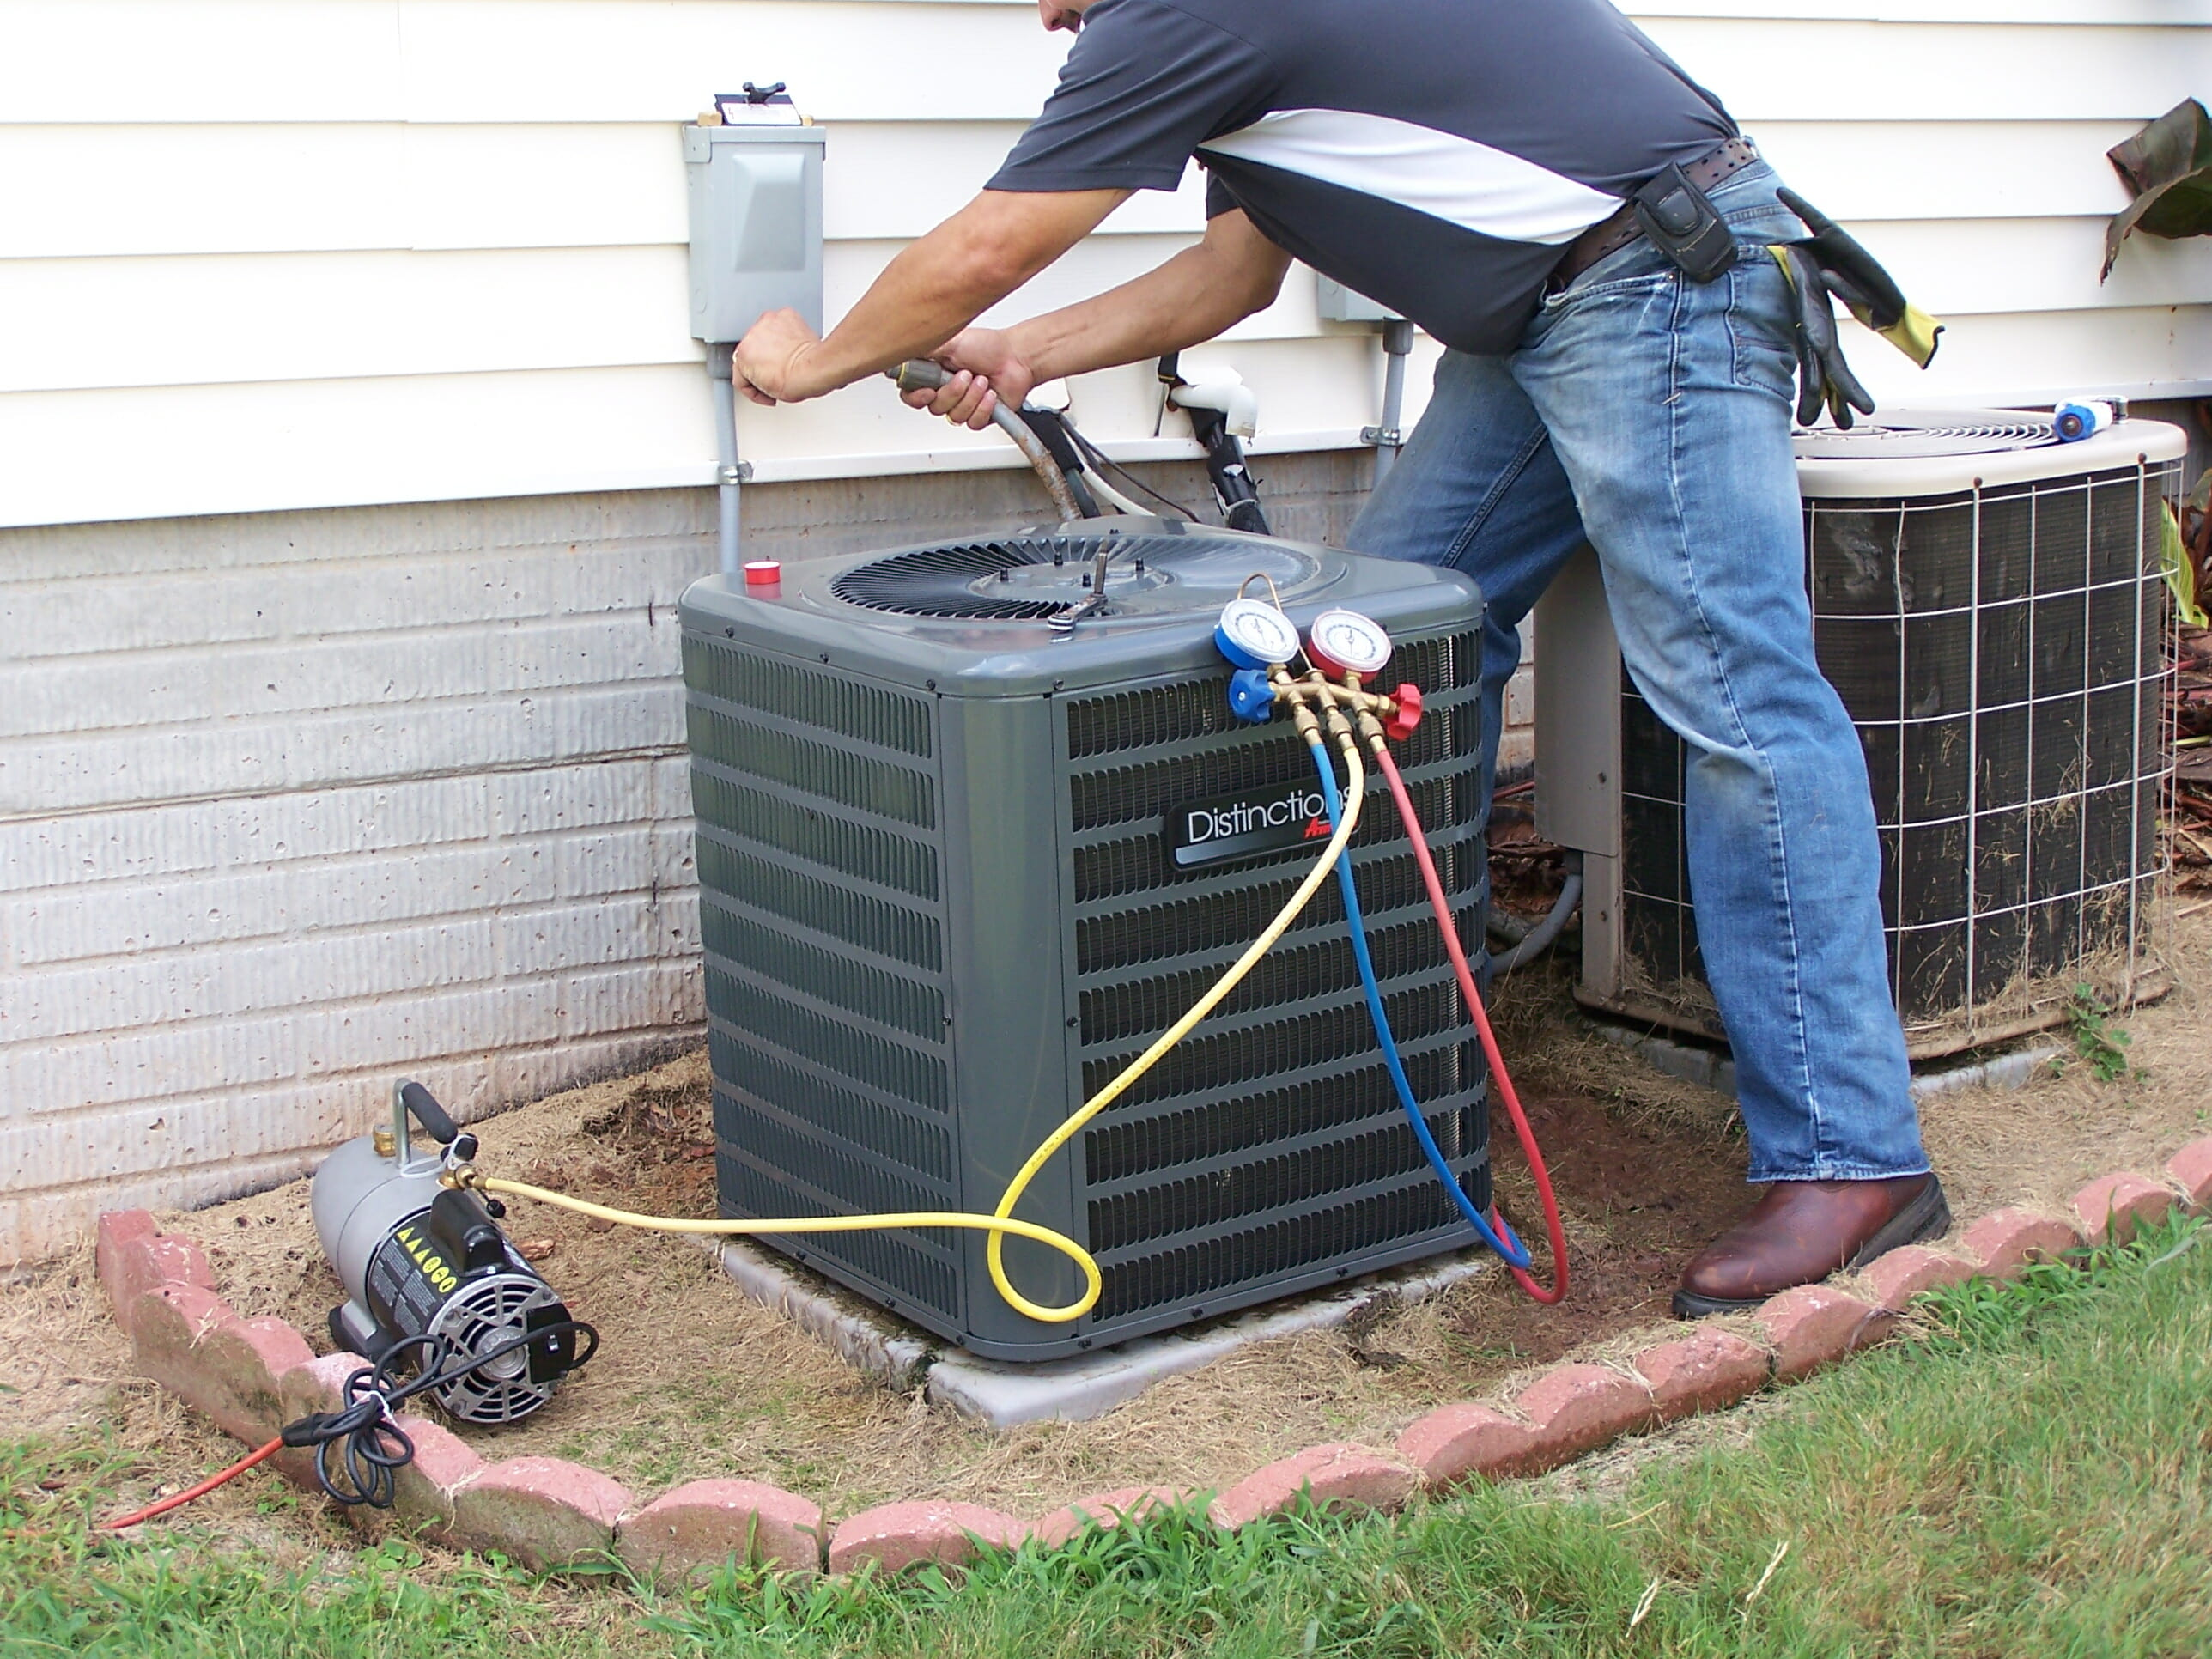 New air conditioning unit cost - Contractor Working Outside On An Hvac Unit Potential Additional Costs